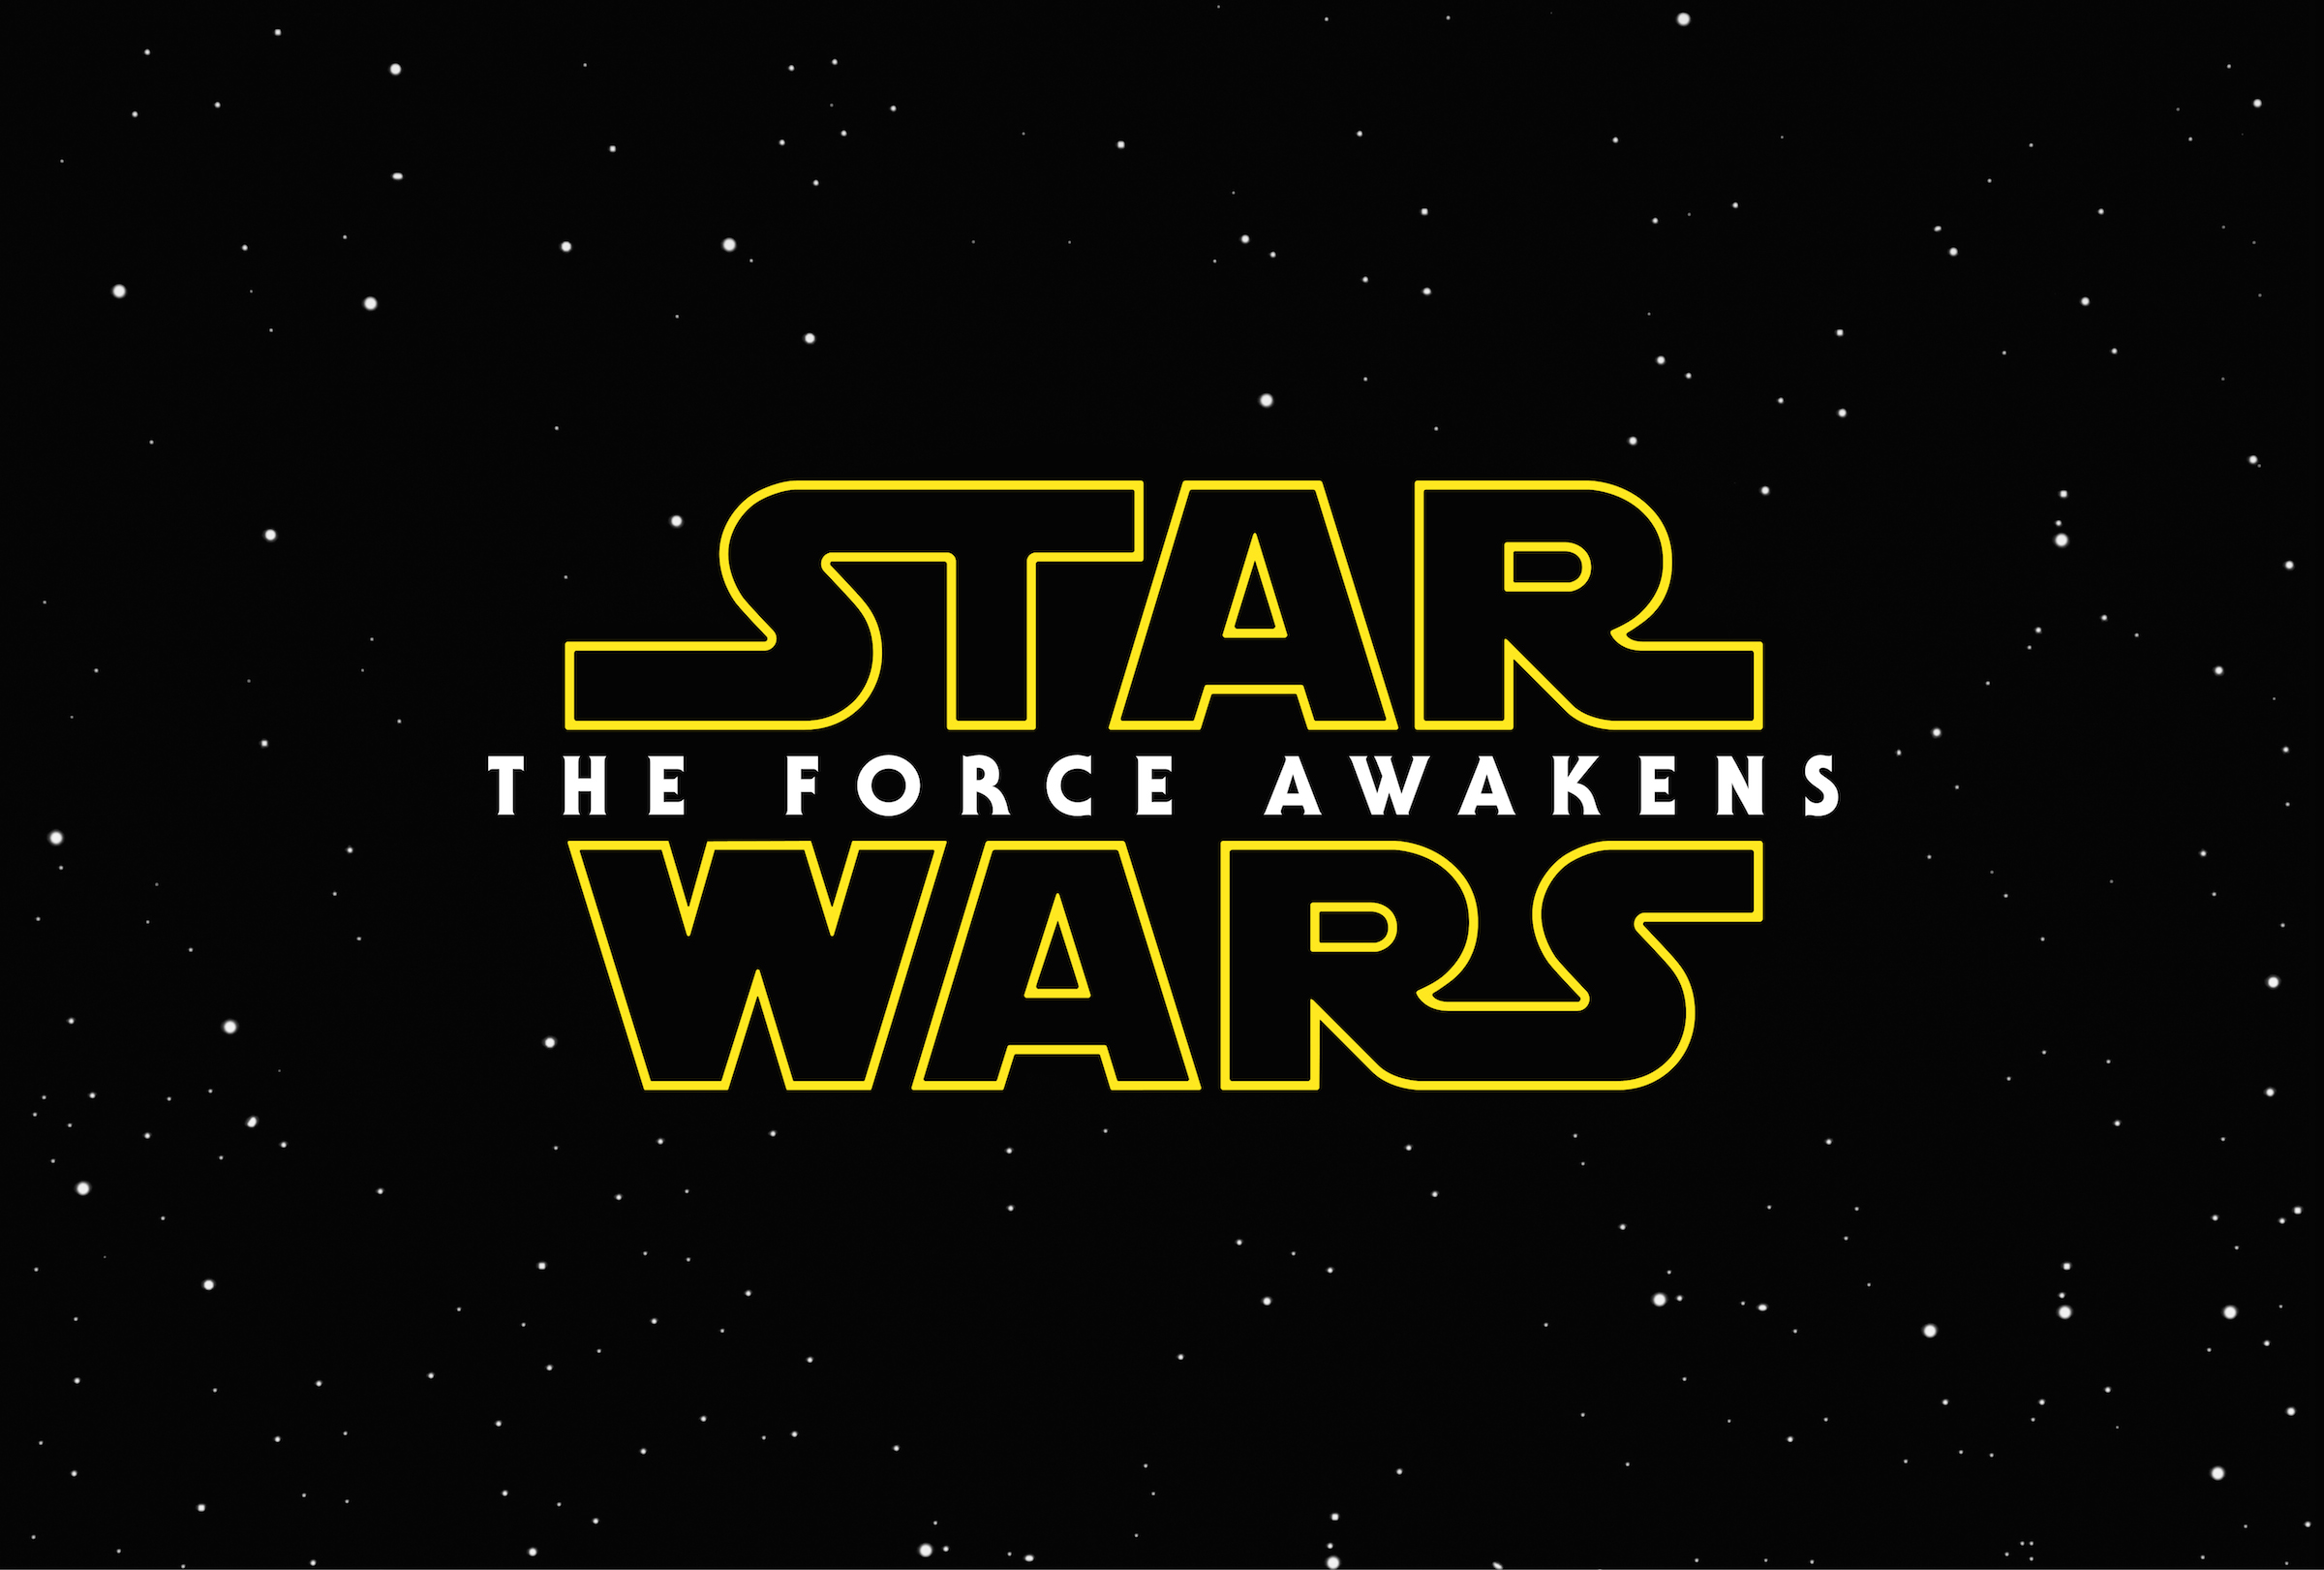 Star Wars 7 The Force Awakens Extended Trailer